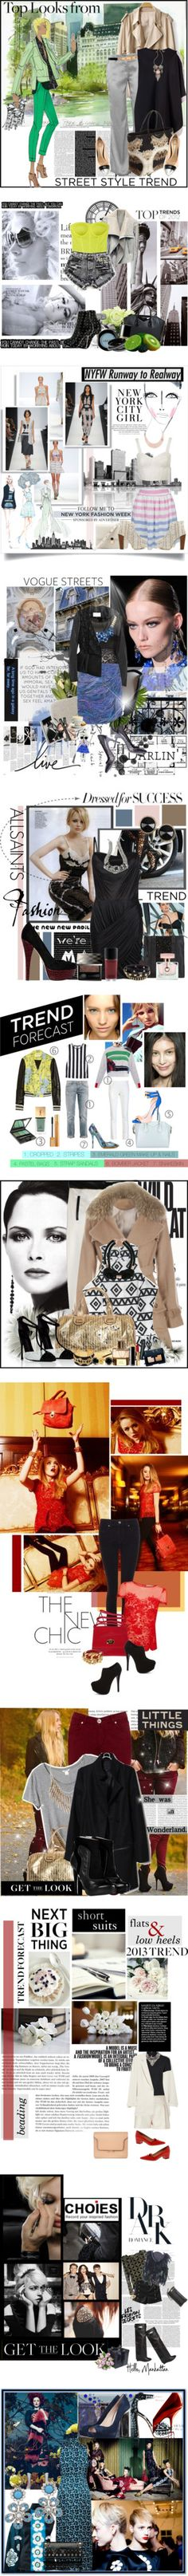 """""""SETS: TOP TRENDS 2013 (PART 2)"""" by sarratori ❤ liked on Polyvore"""